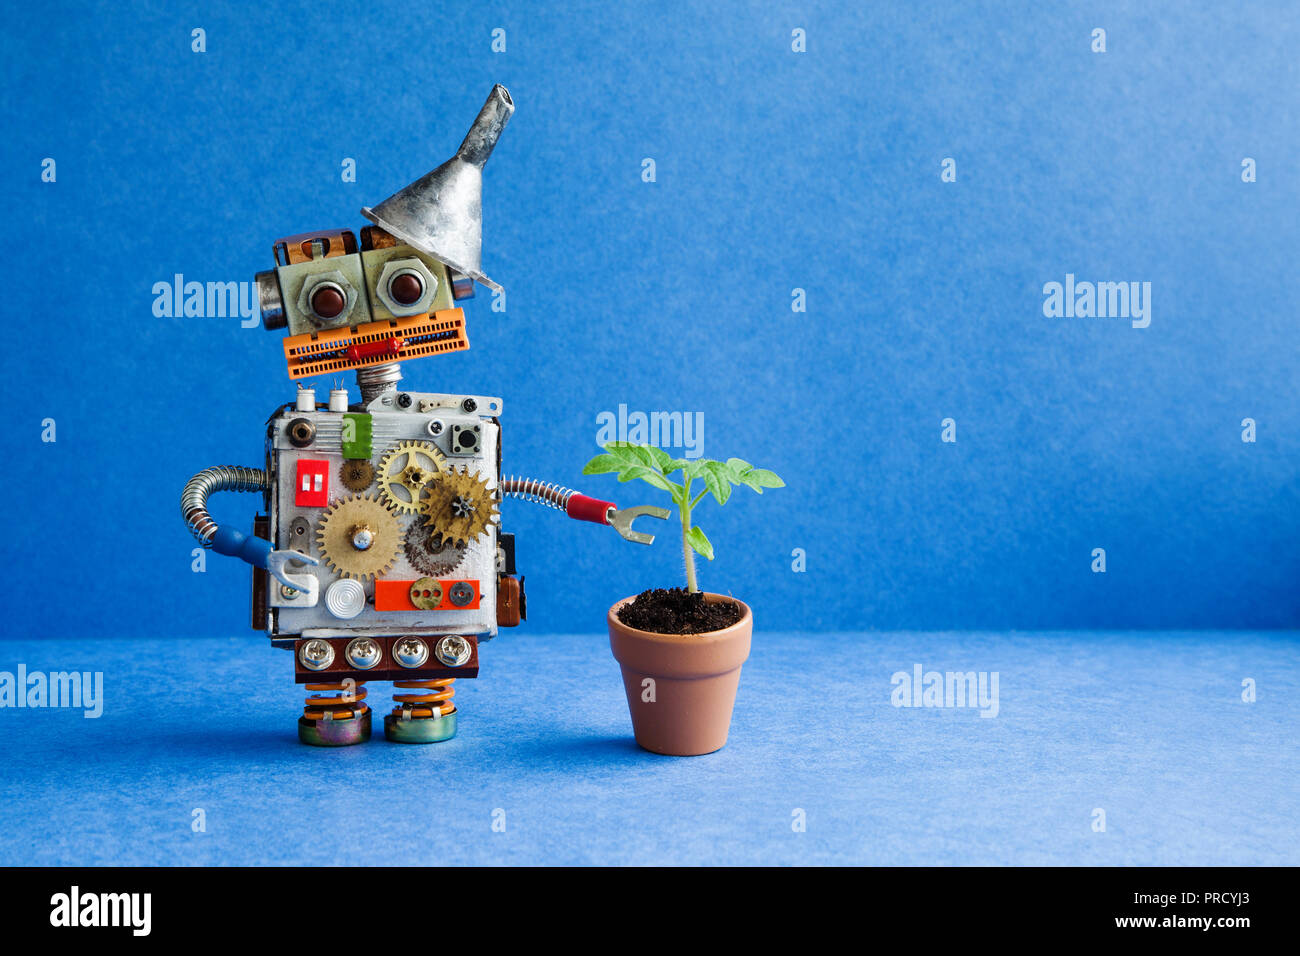 Comical robot with a small green sprout plant in a clay flower pot. Organic eco life concept. Blue background, copy space - Stock Image